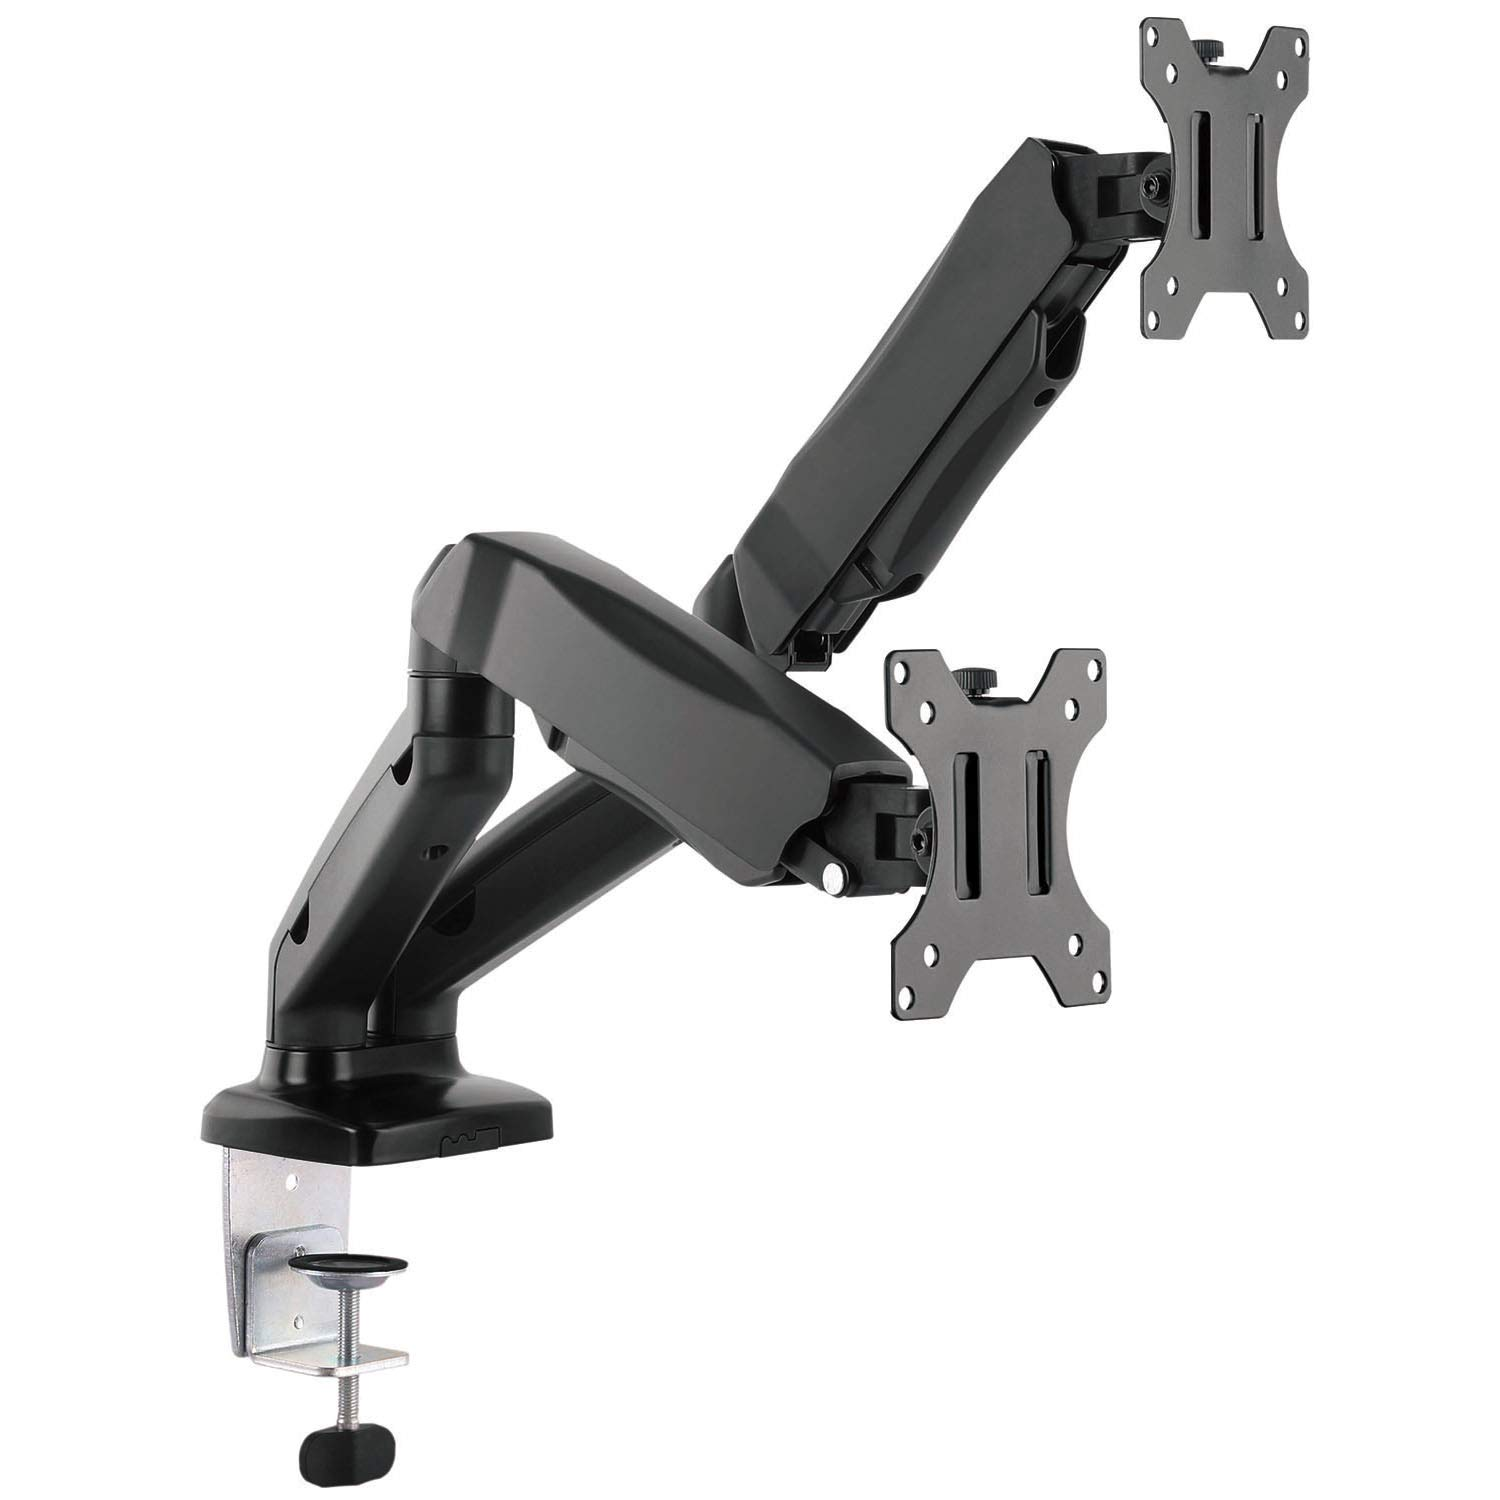 WALI Dual LCD Monitor Fully Adjustable Gas Spring Desk Mount Fit 2 Screens VESA up to 27 inch, 14.3 lbs. Weight Capacity per Arm (GSM002), Black